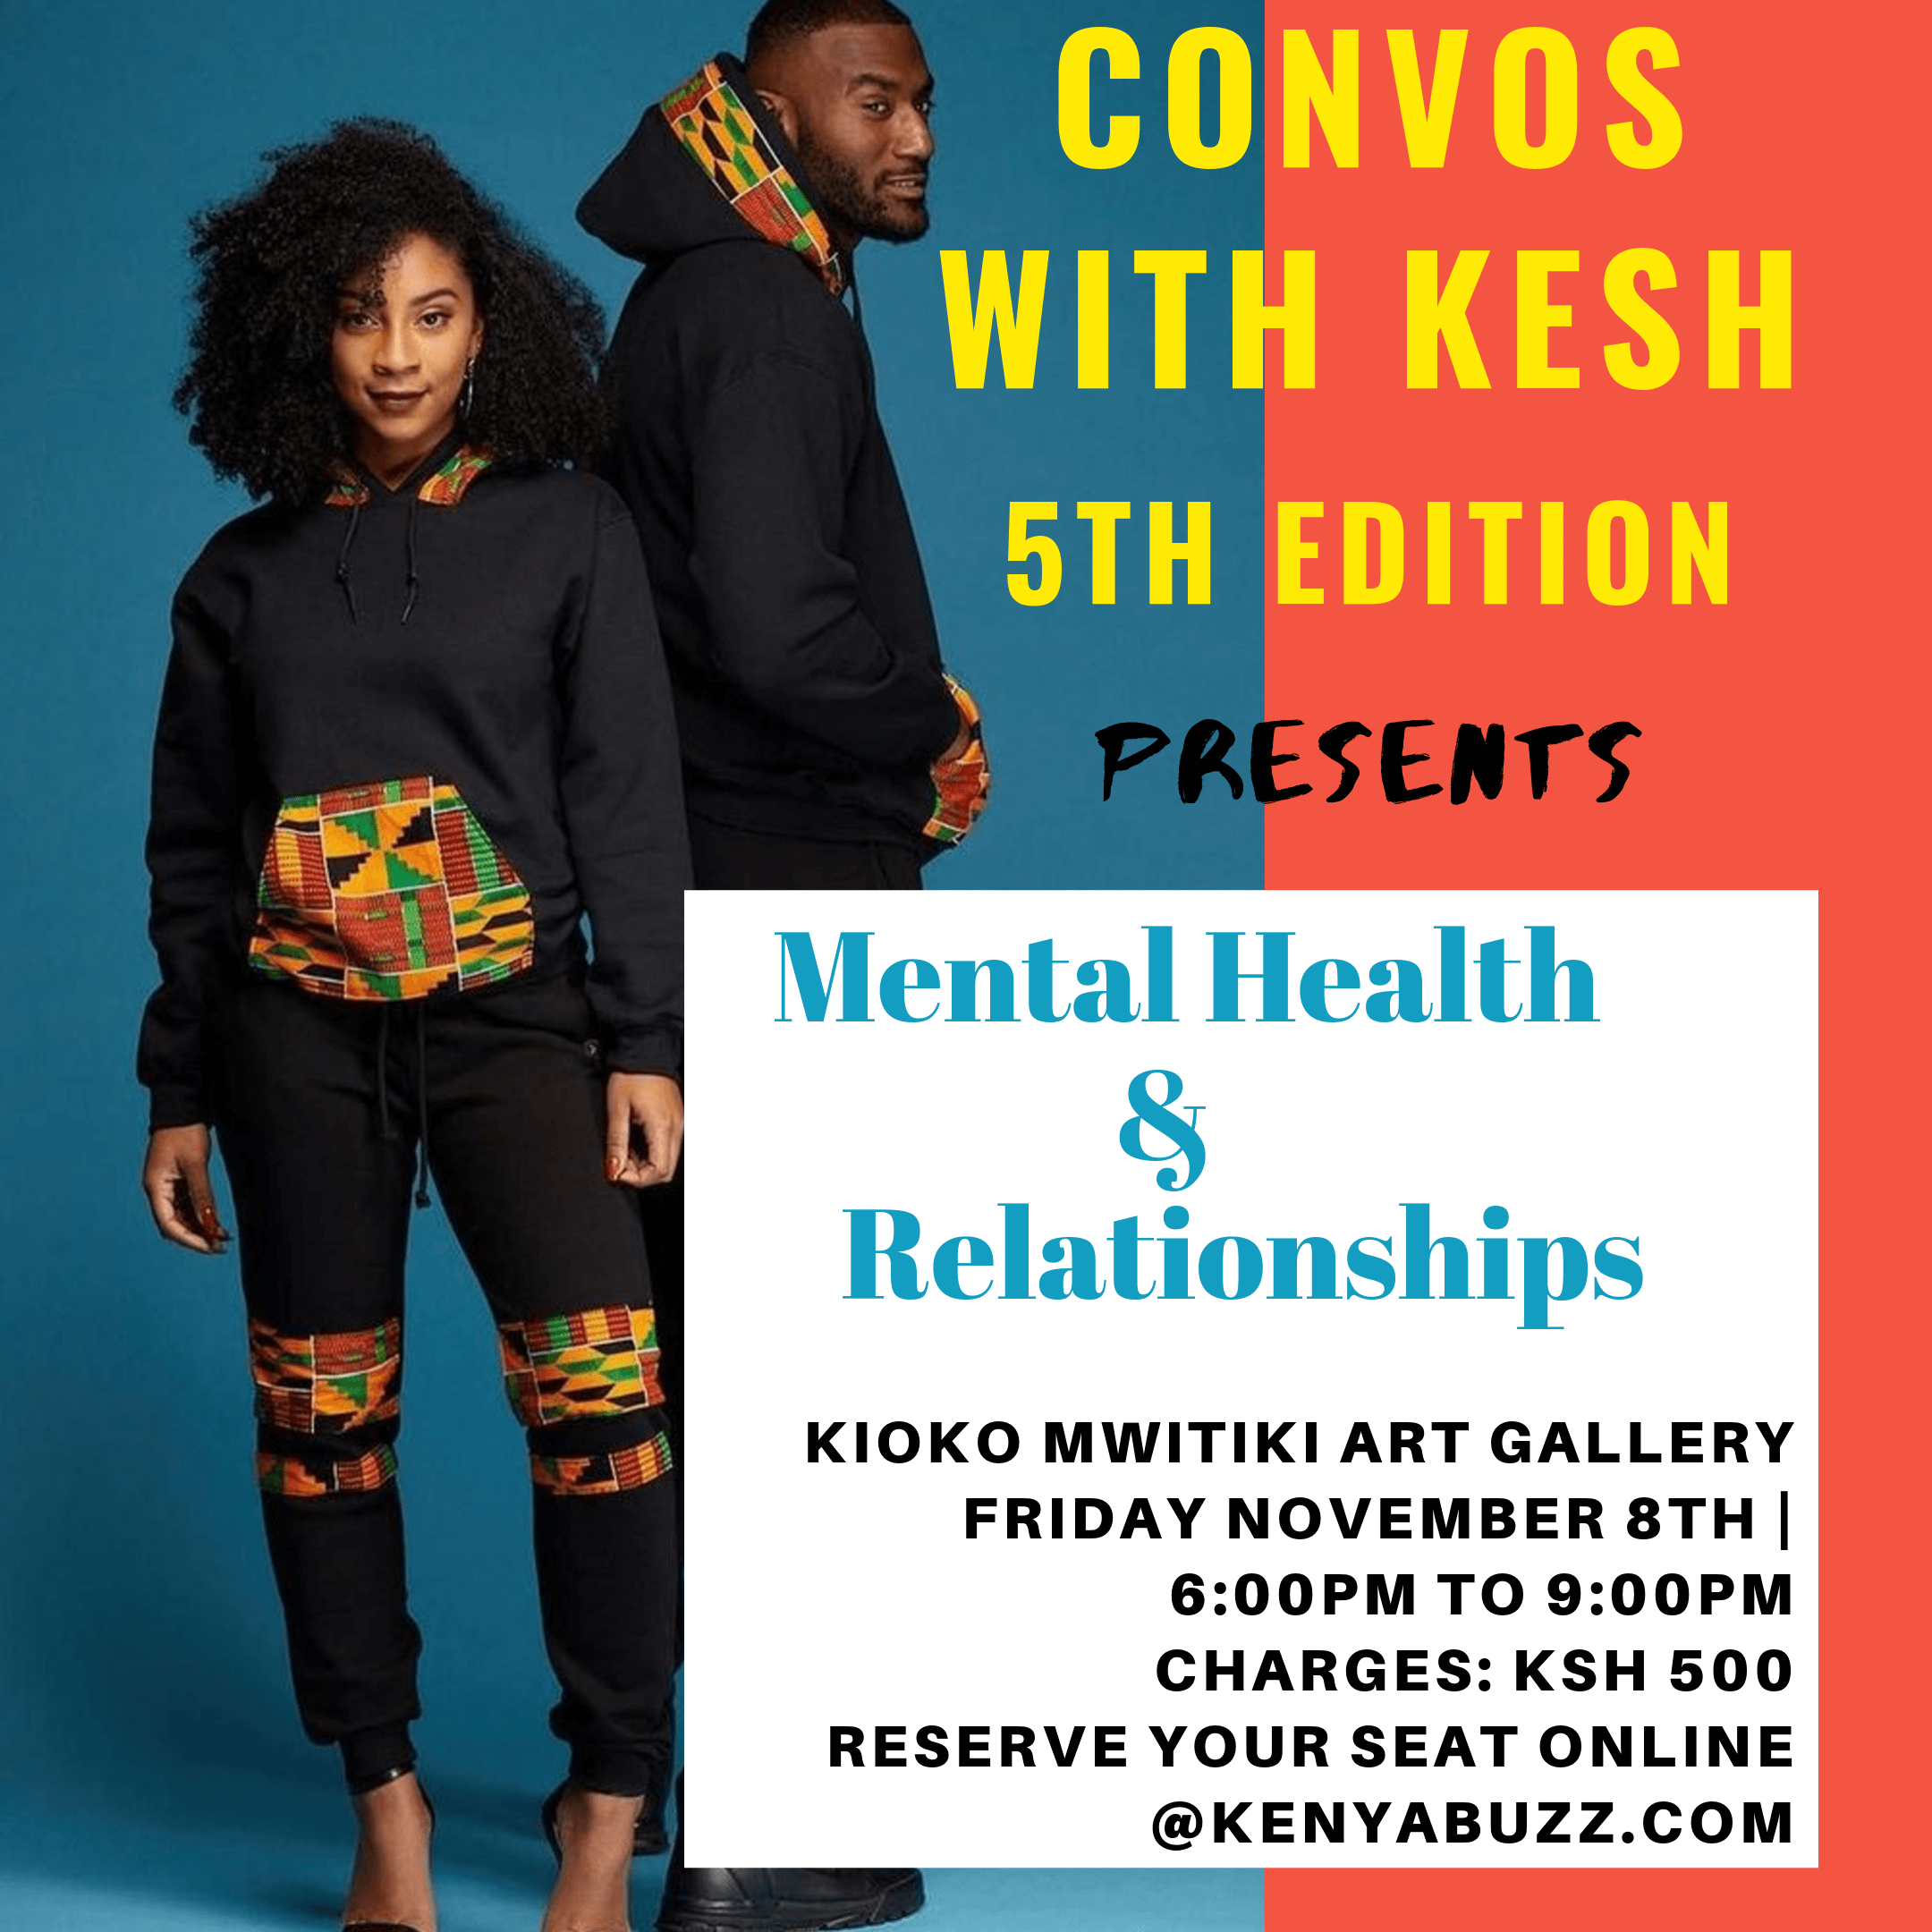 Convos With Kesh 5th edition: Mental Health &Relationships